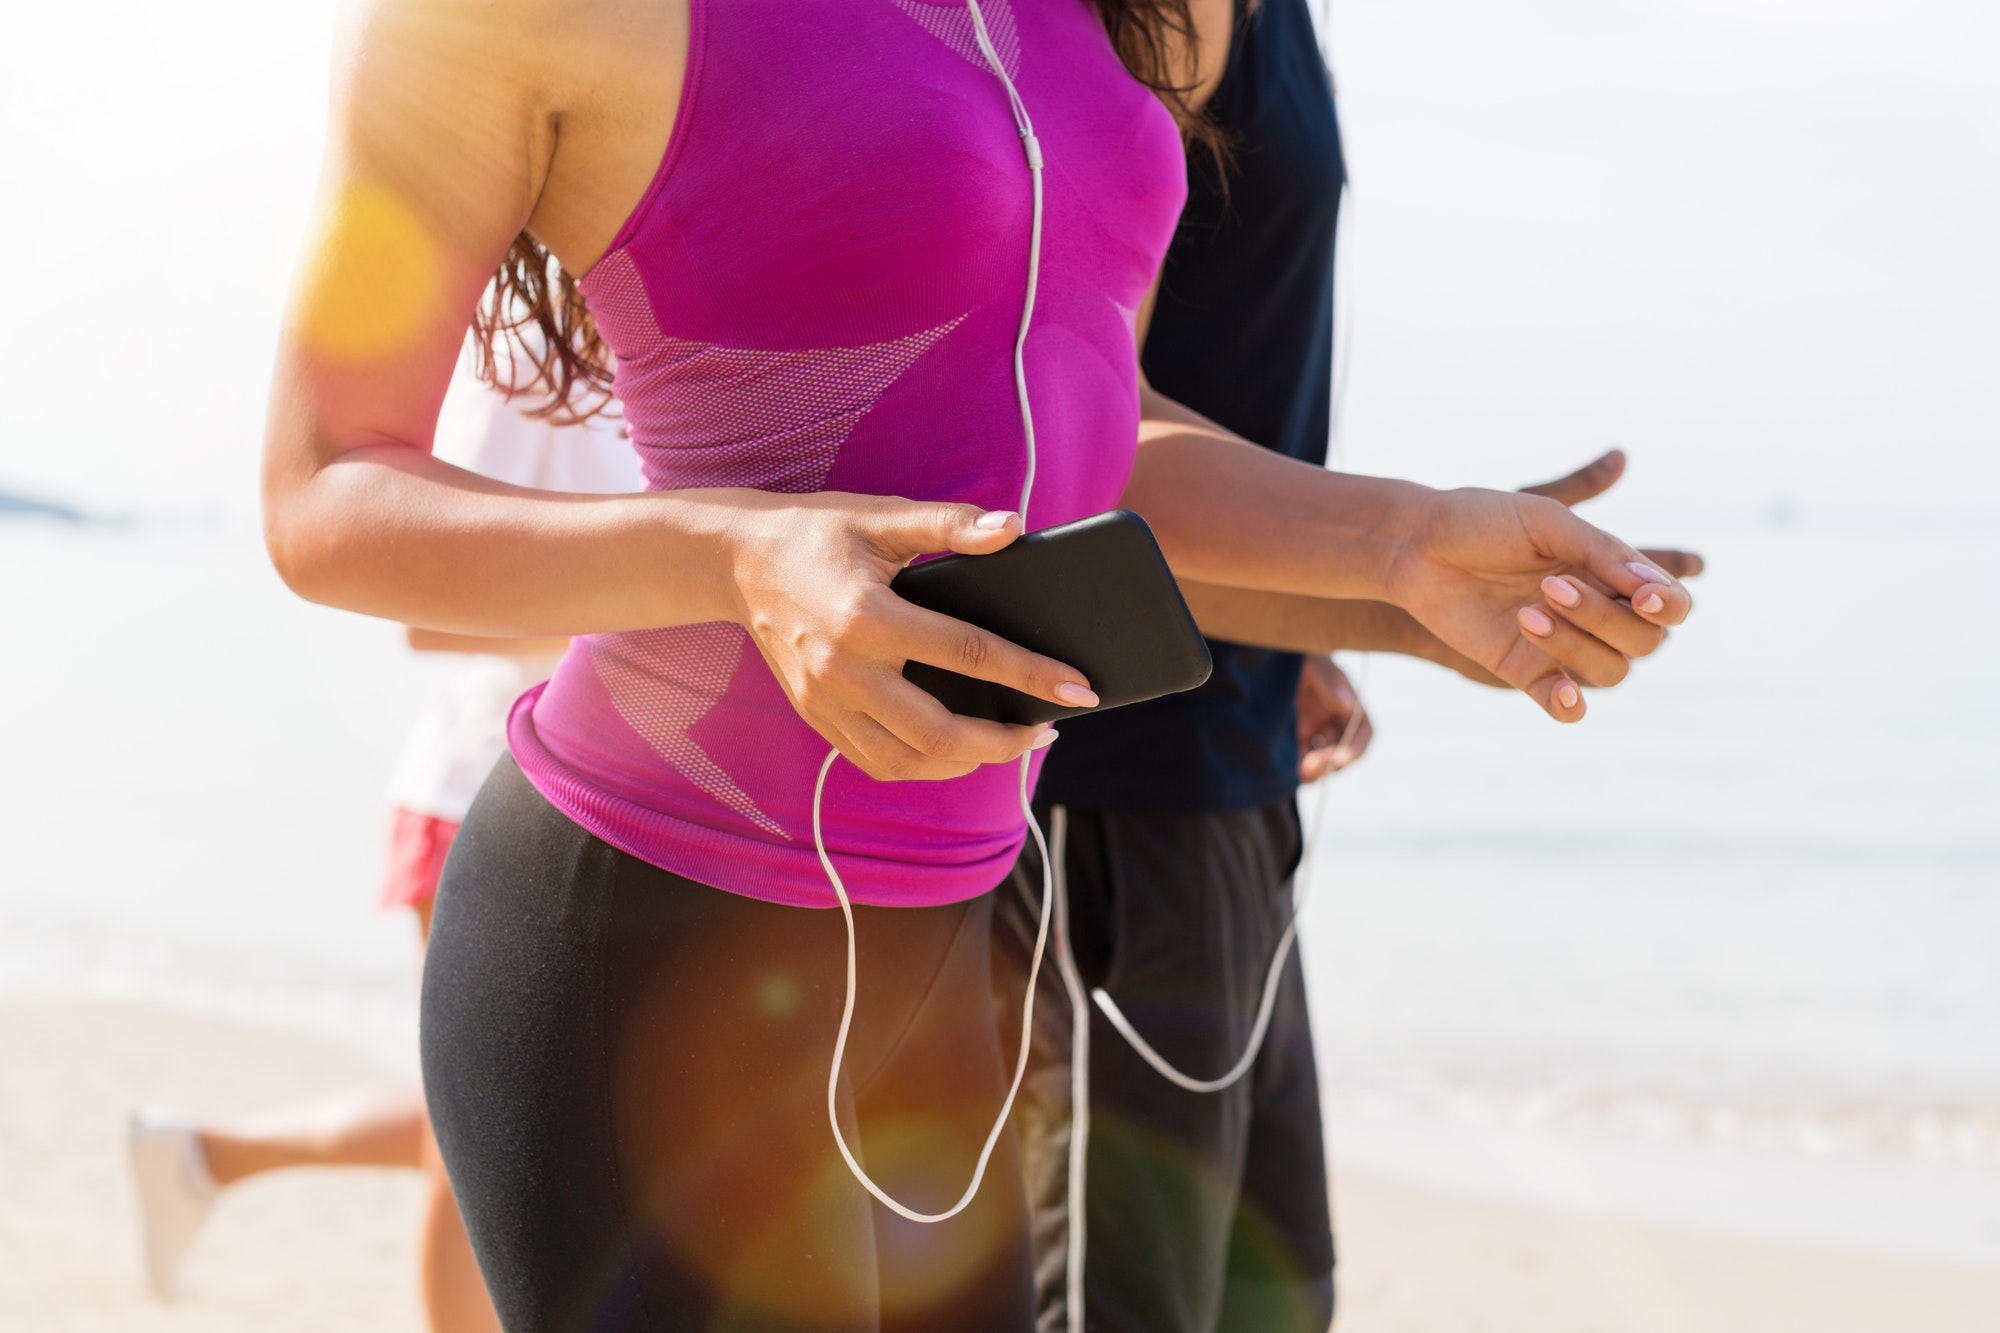 moderate hypertension, exercise is key